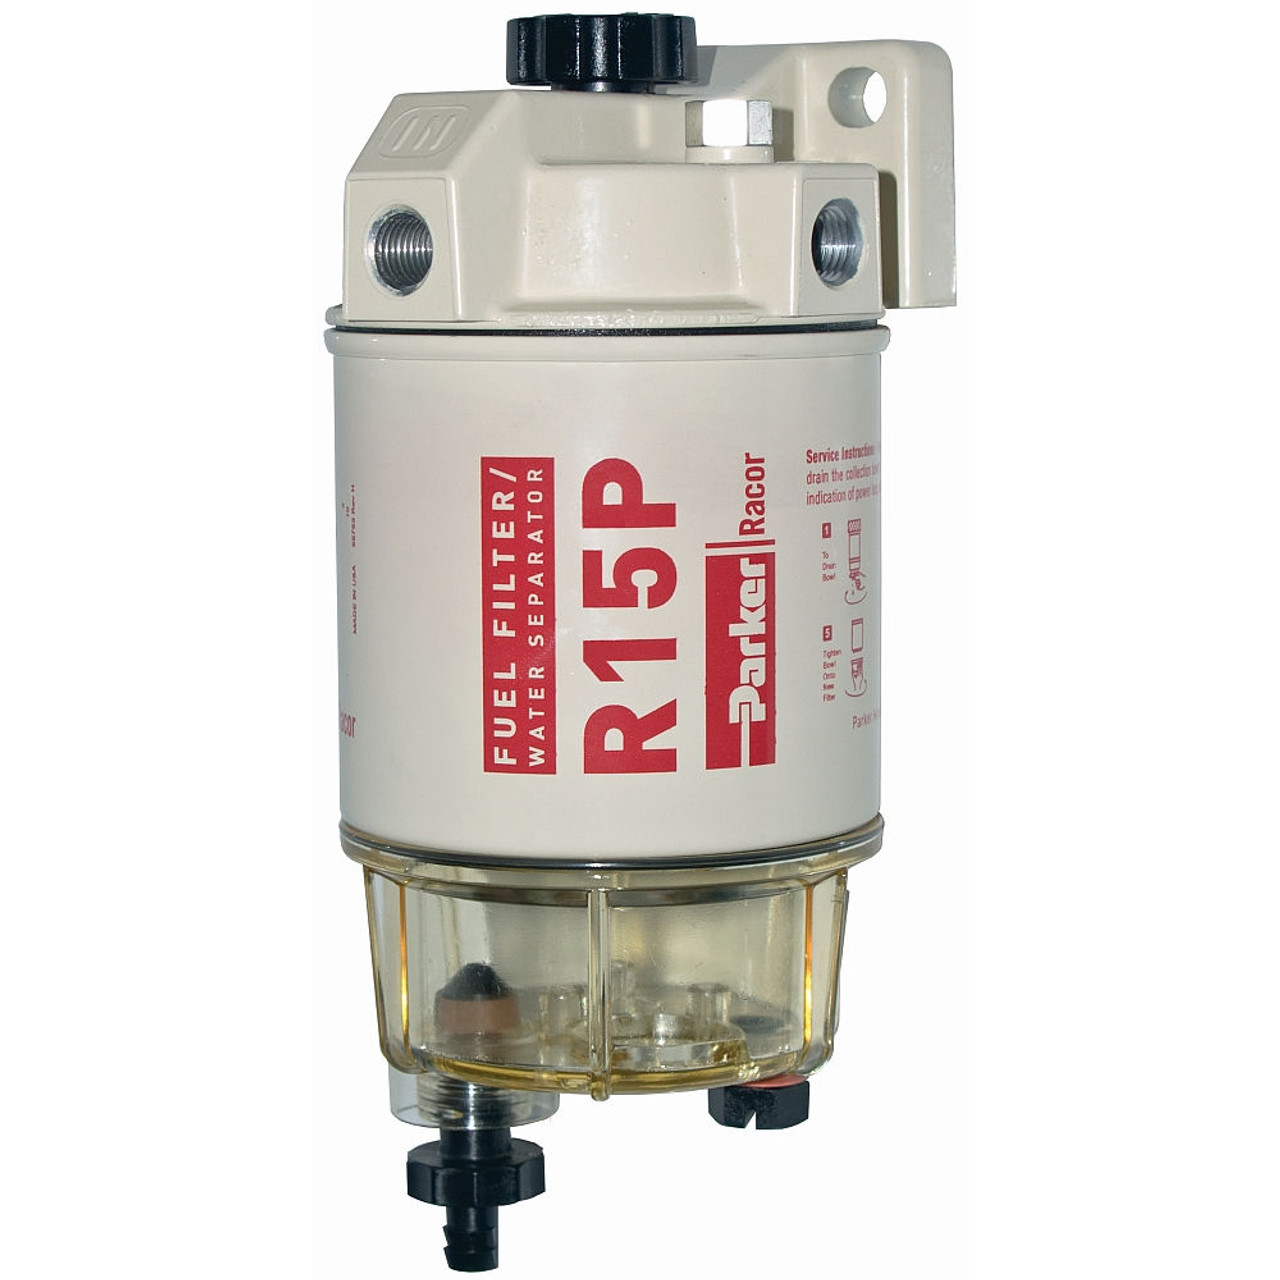 racor 200 series 15 gph low flow diesel fuel filter water separator 215 filter assembly [ 1280 x 1280 Pixel ]